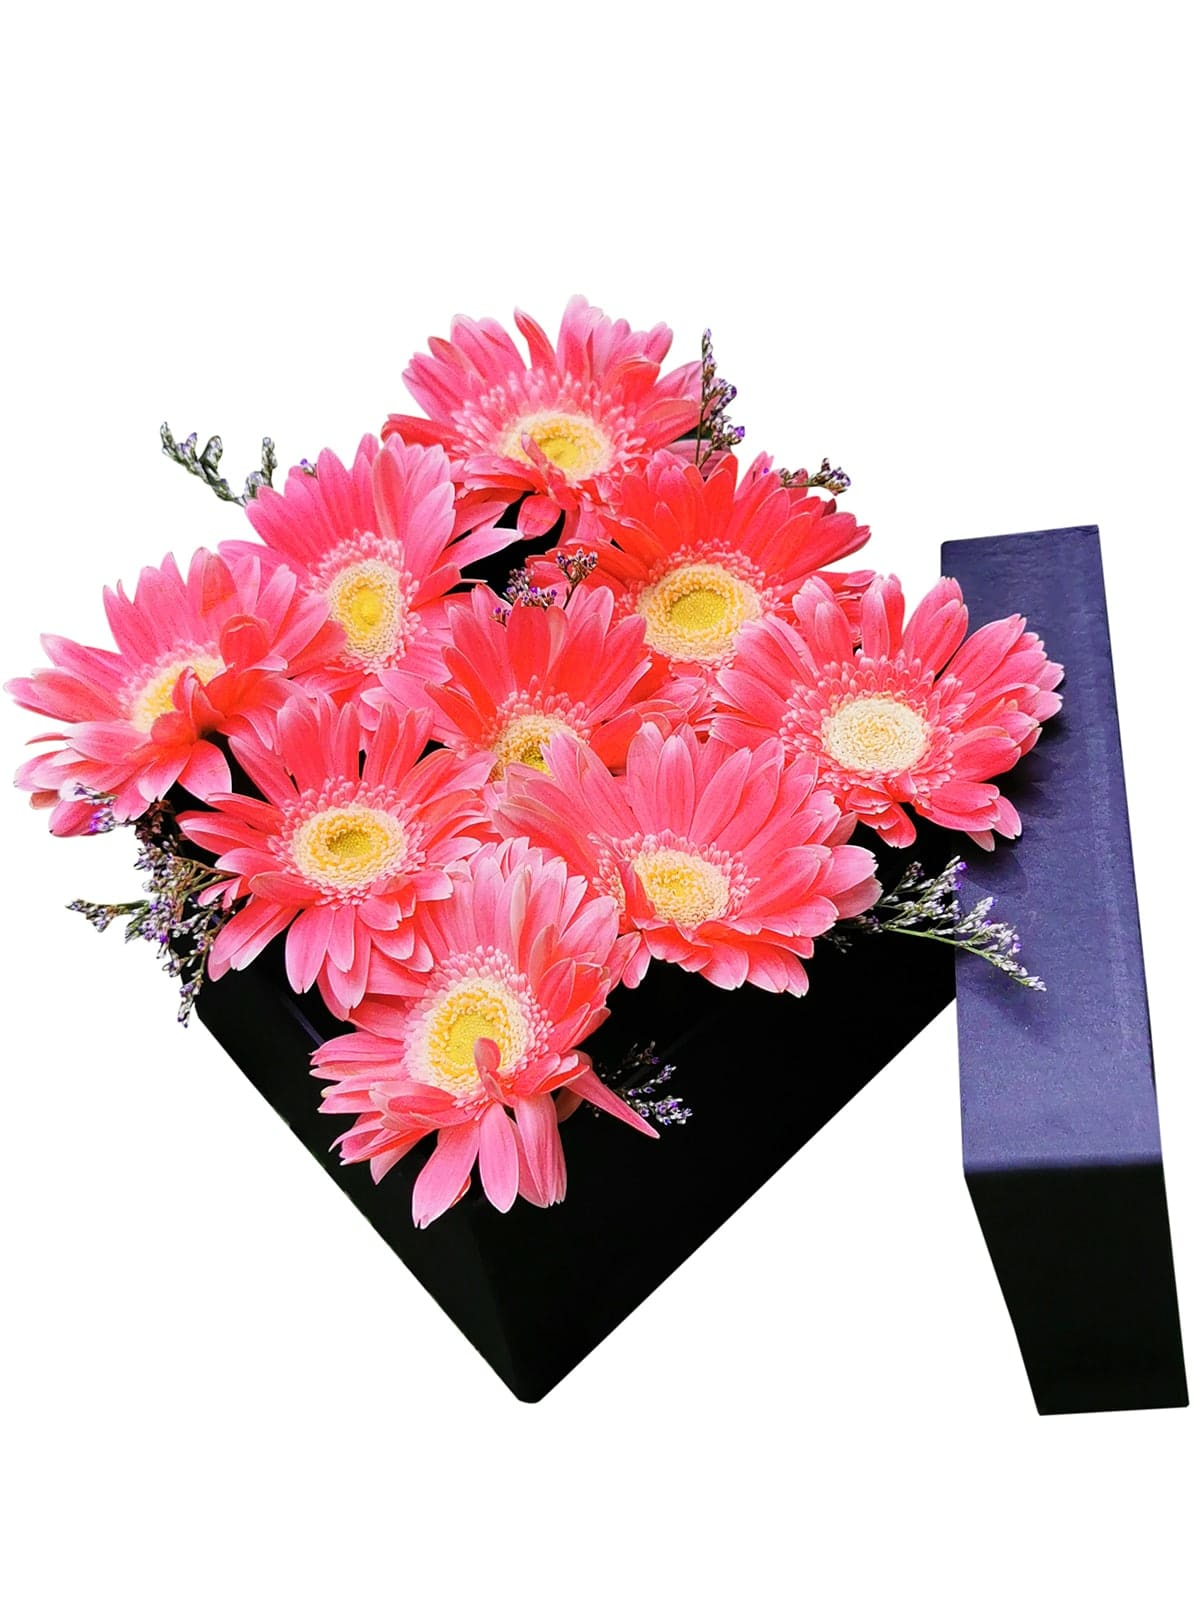 52 Pink Gerbera Love Box 001